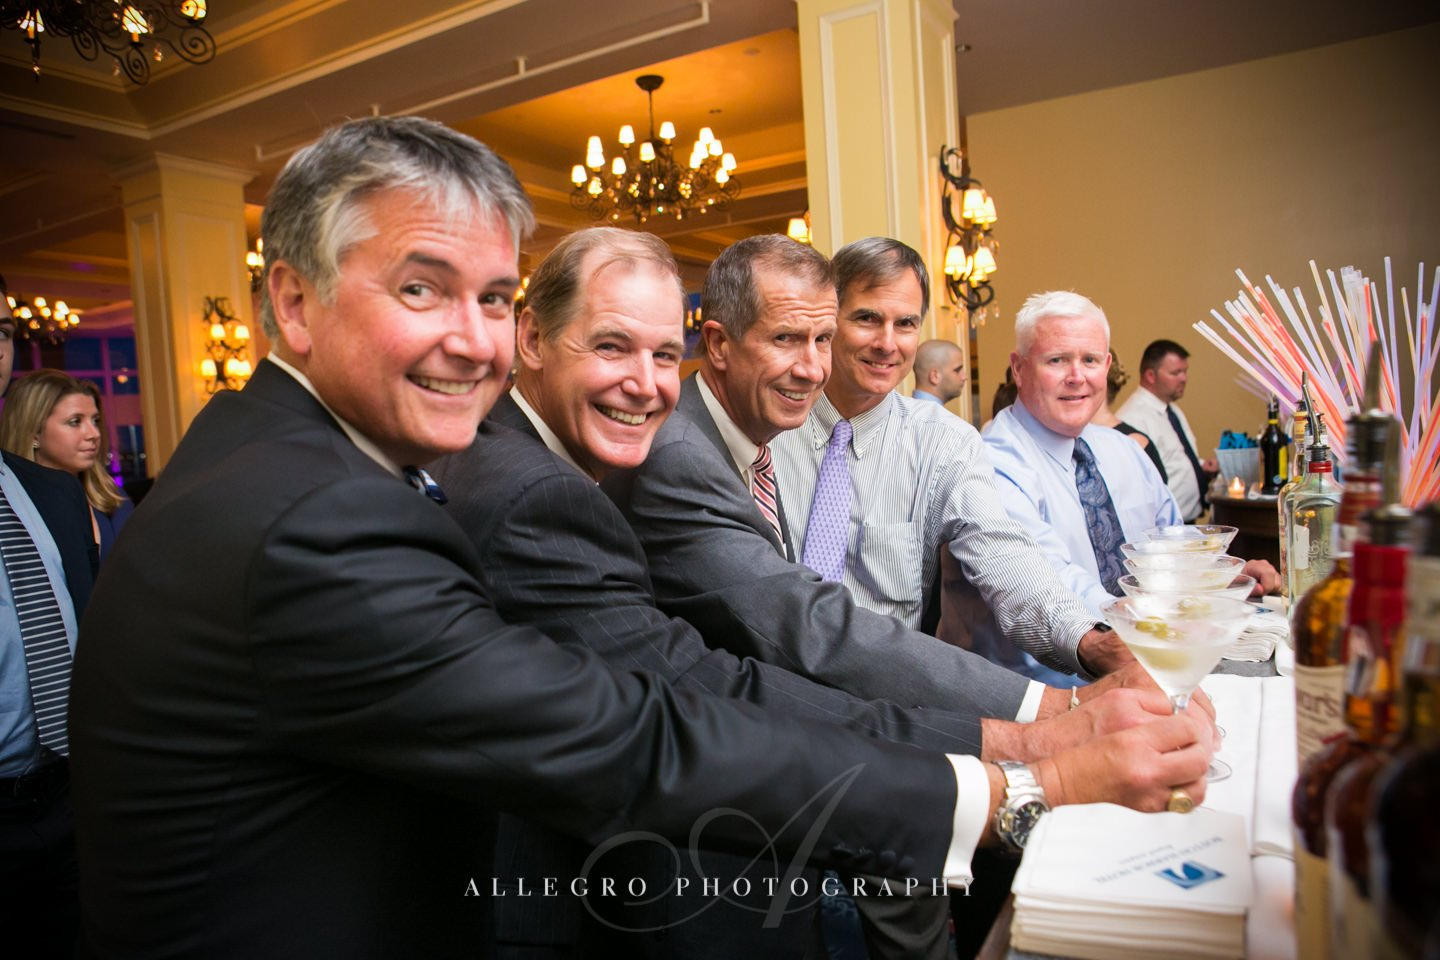 the men photo by Allegro Photography